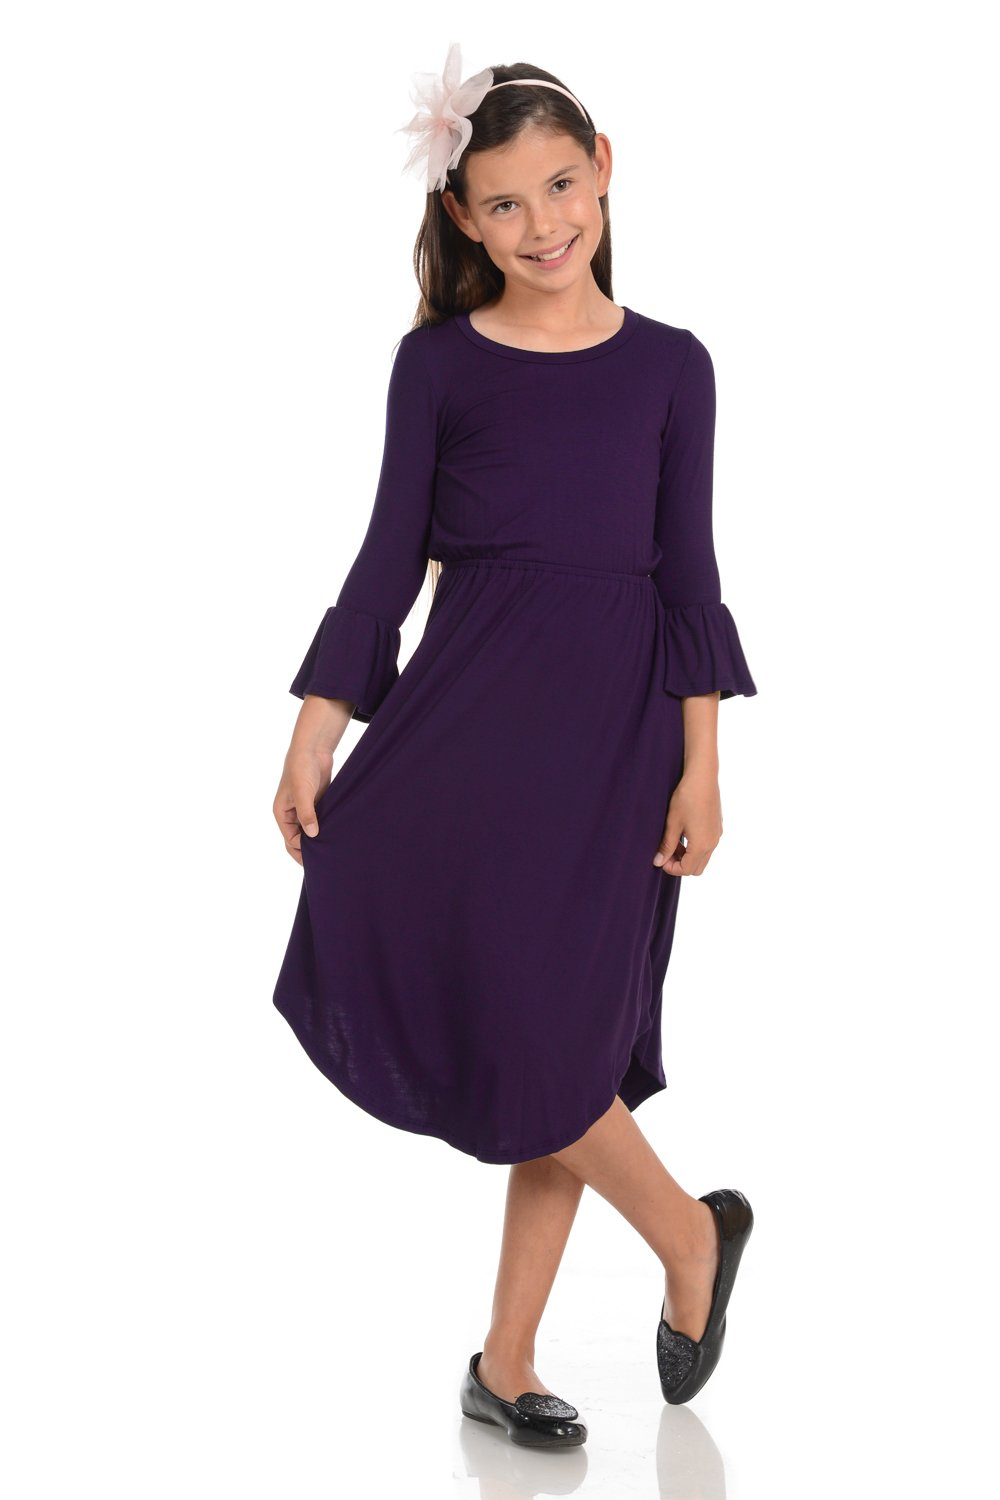 Honey Vanilla Girls' Fit and Flare Midi Dress with Bell Sleeve Large 9-10 Years Eggplant